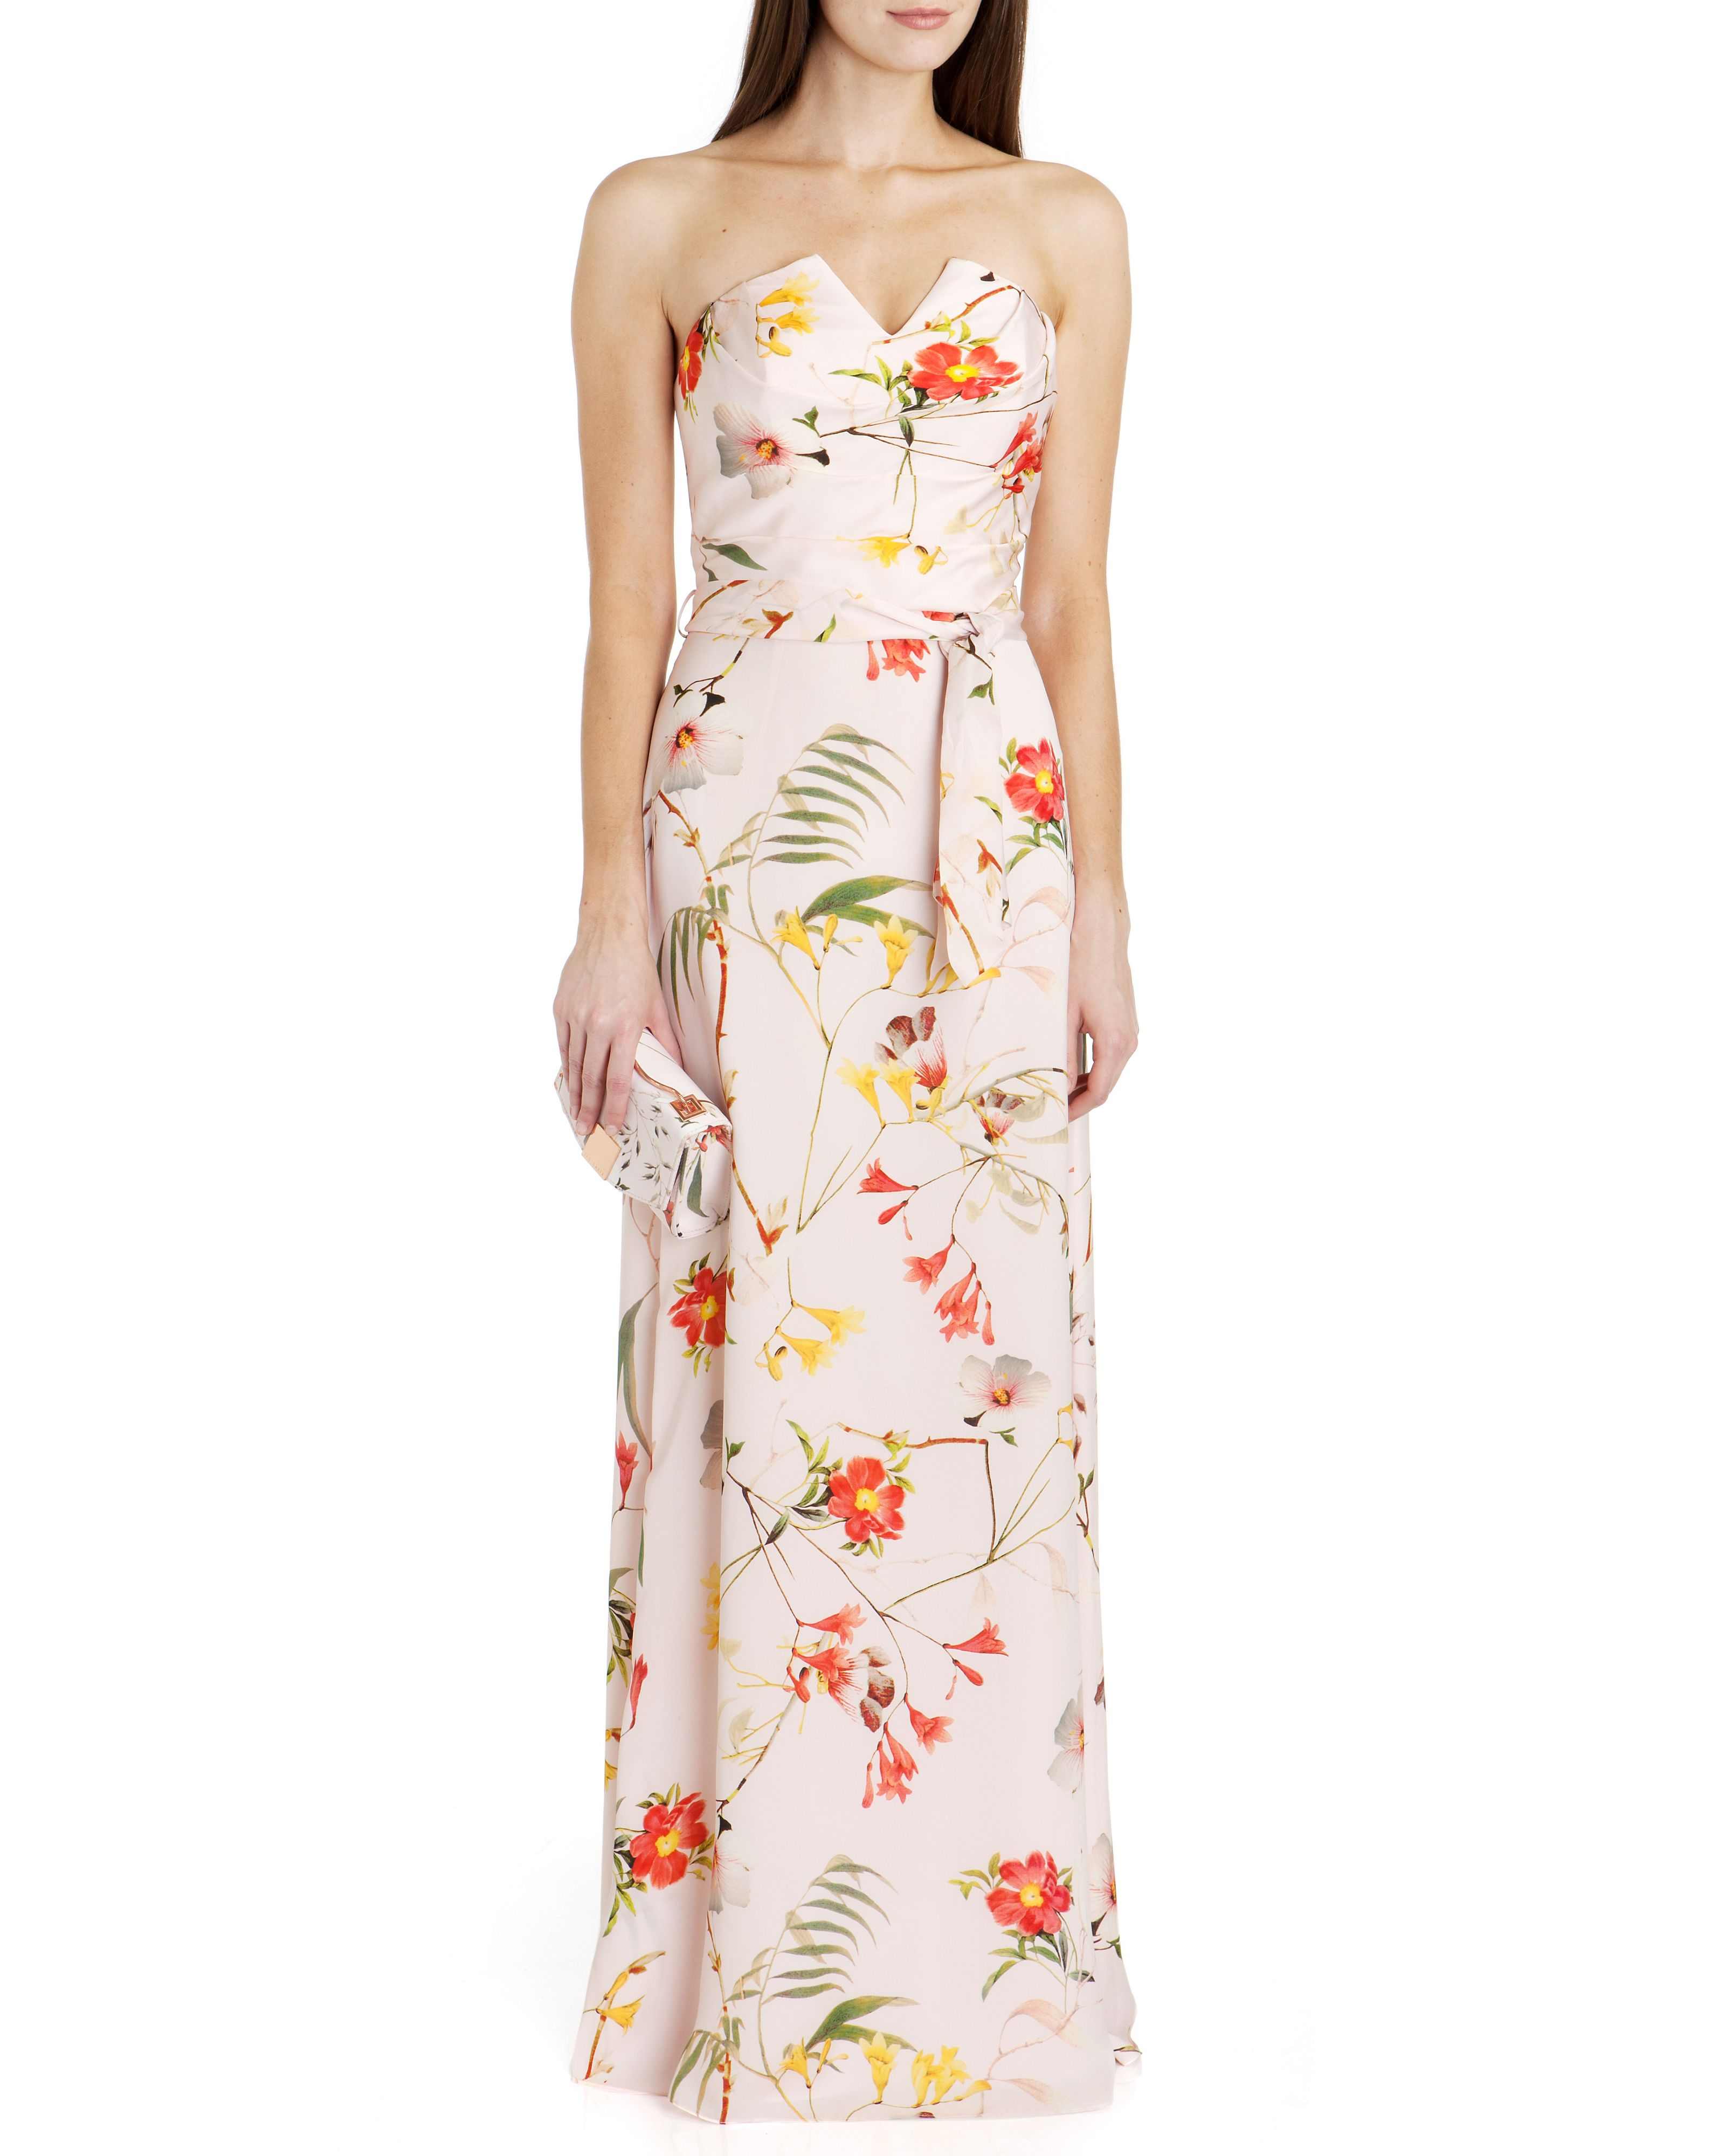 Alanah botanical bloom print maxi dress